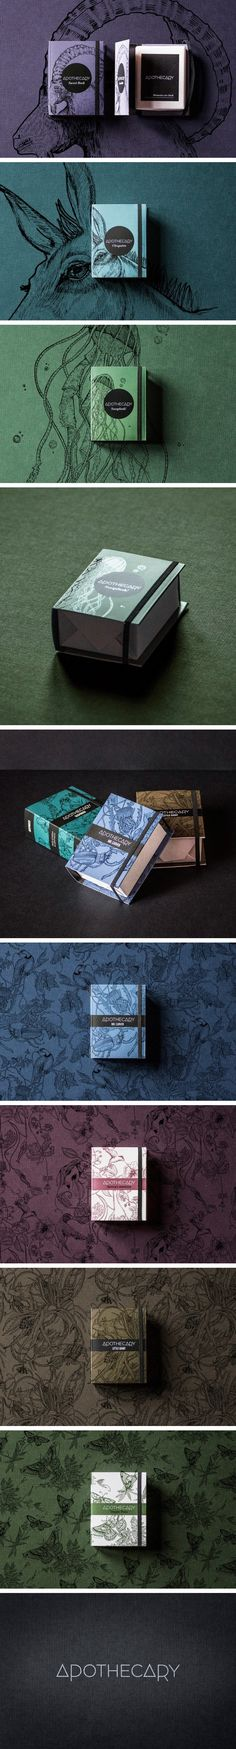 Apothecary by The6th Creative Studio.